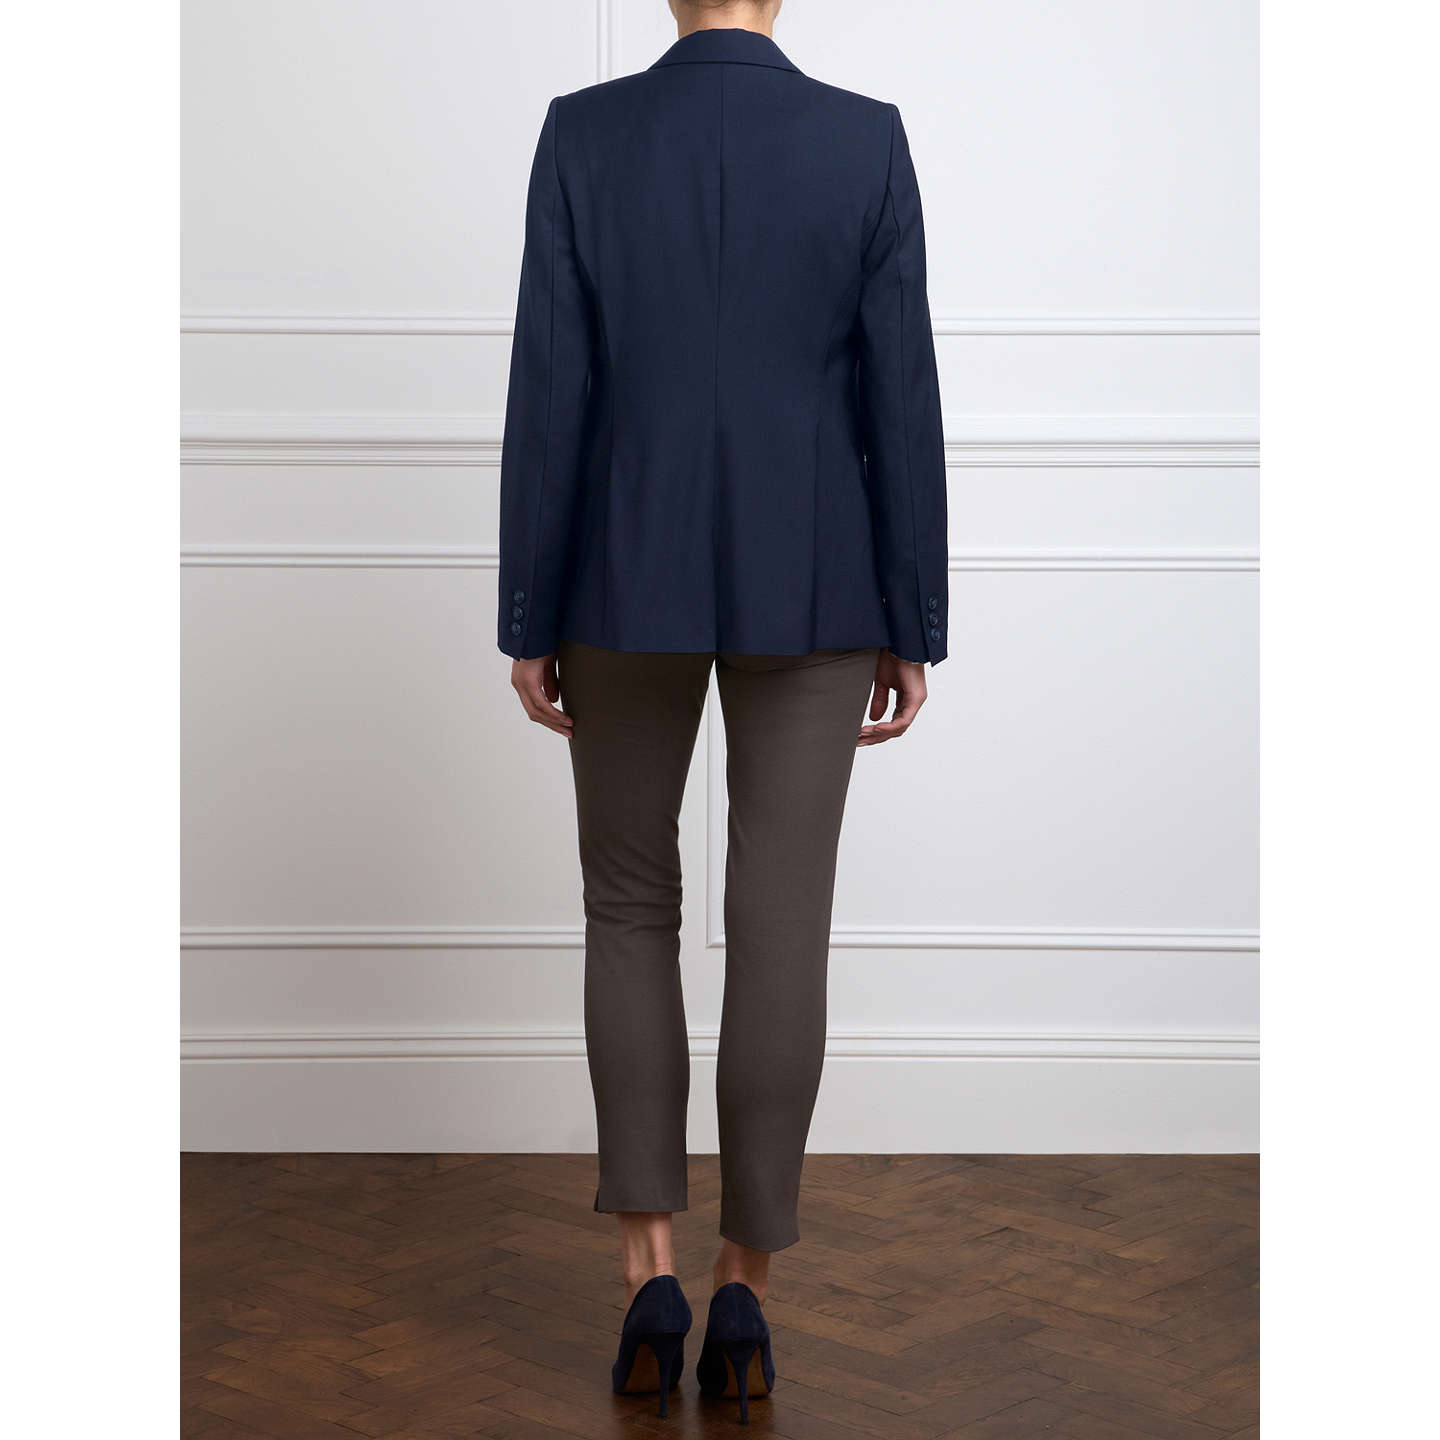 BuyPure Collection Lydia Wool Blazer, Navy, 8 Online at johnlewis.com